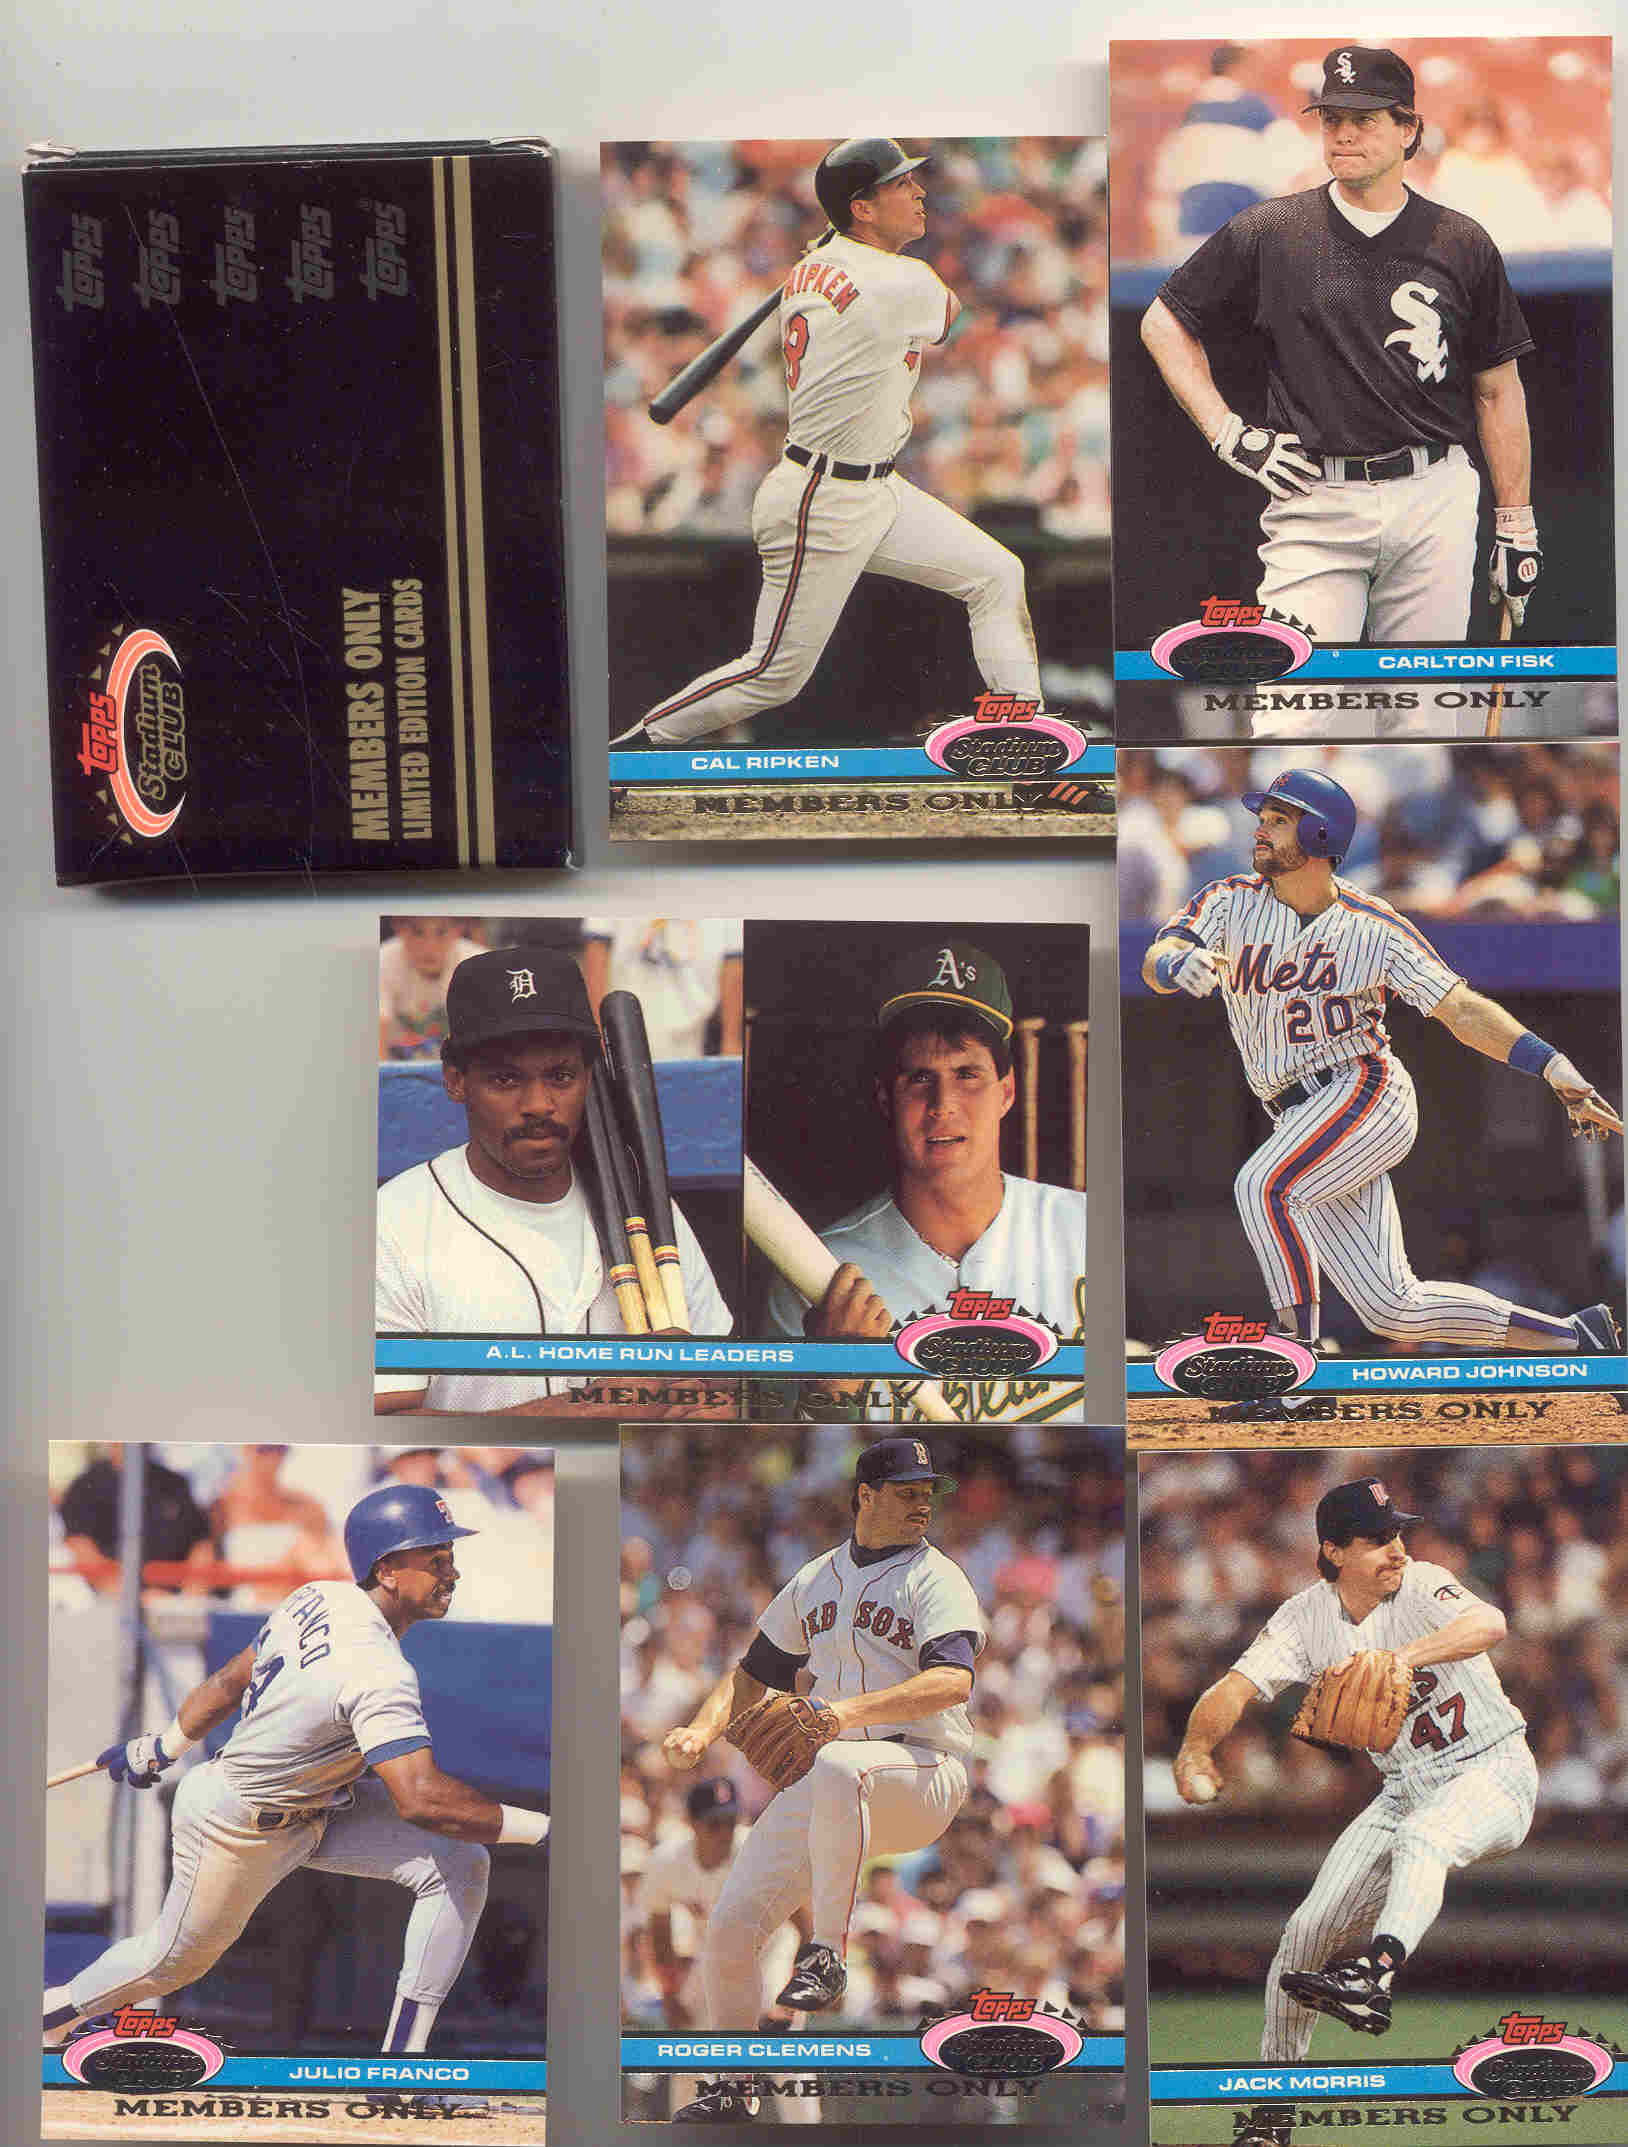 1991 Stadium Club Members Only Limited Edition Cards Glavine Knoblauch Harnisch Saberhagen Pendelton Henderson Lankford Cone Reardon Morris  Franco Johnson Fisk Ripken Clemens  Ryan Bagwell